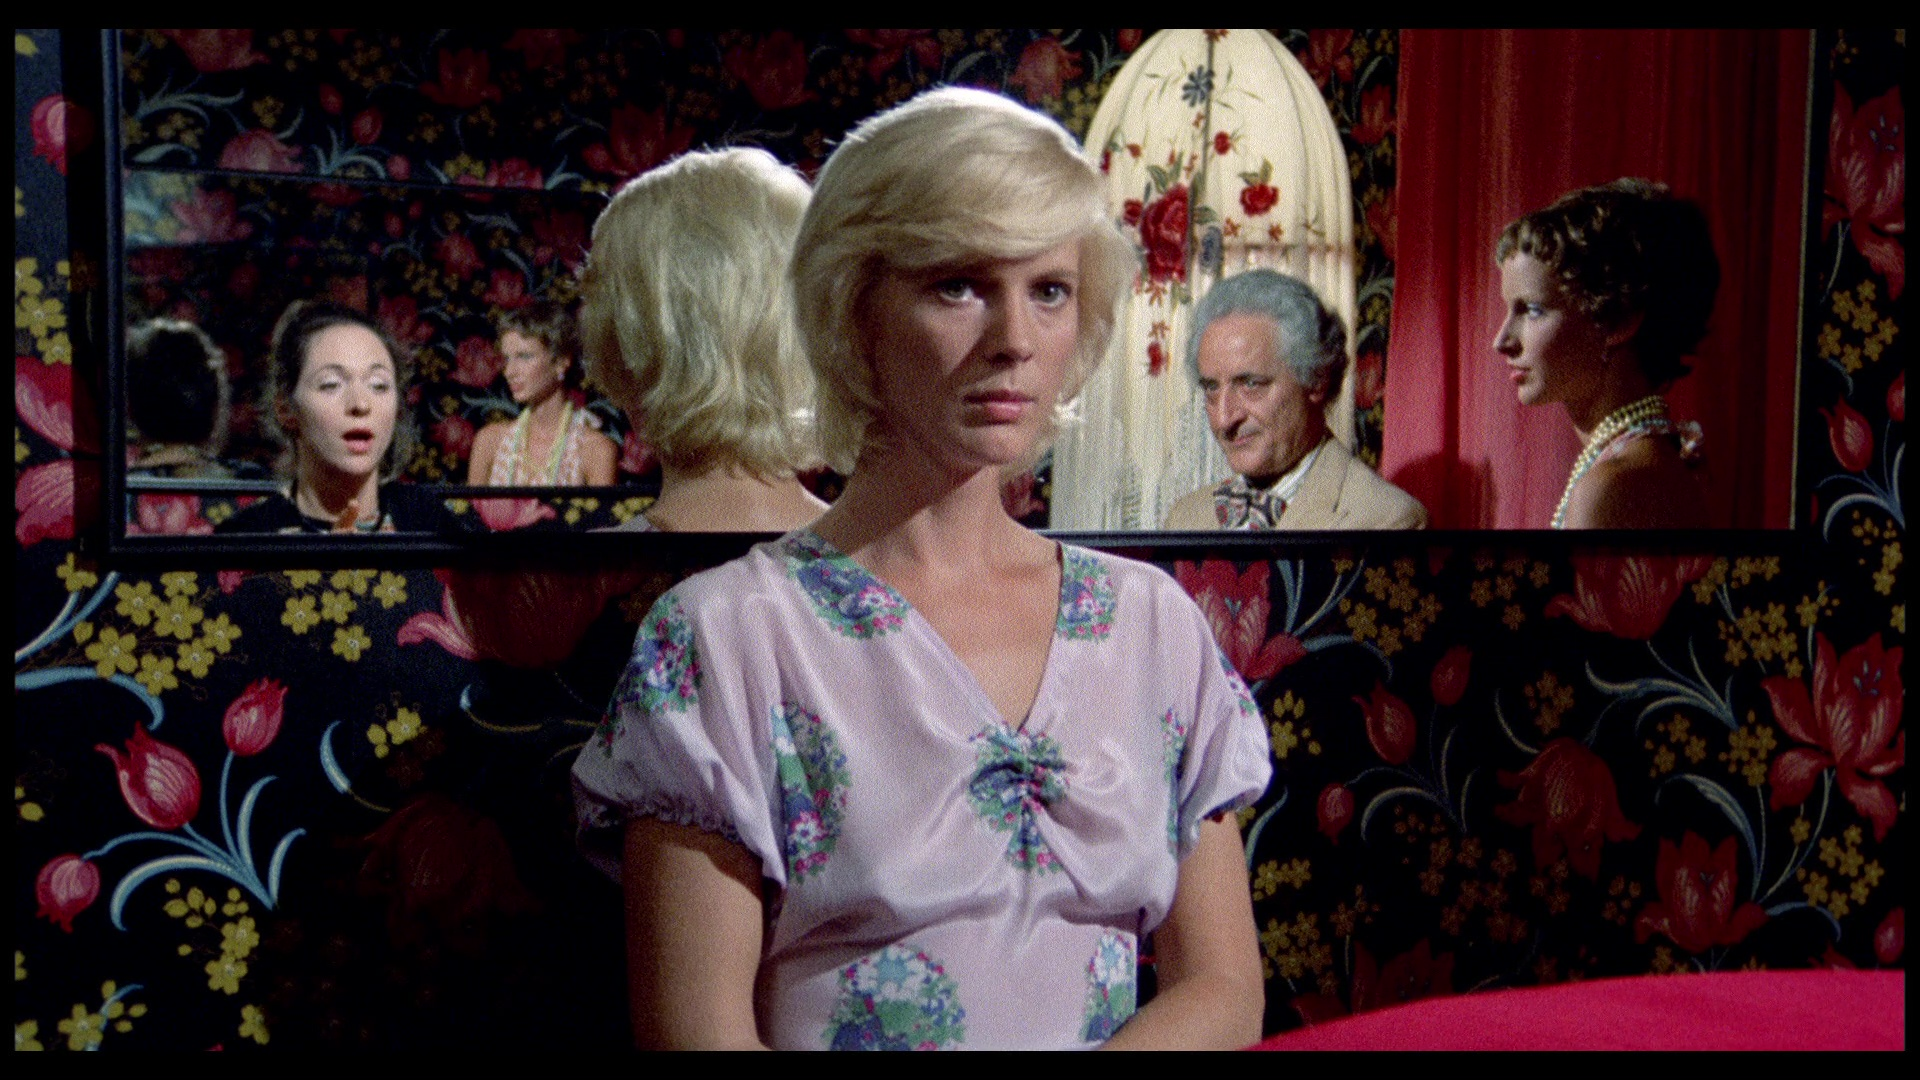 Mimsy Farmer in The Perfume of the Lady in Black giallo horror